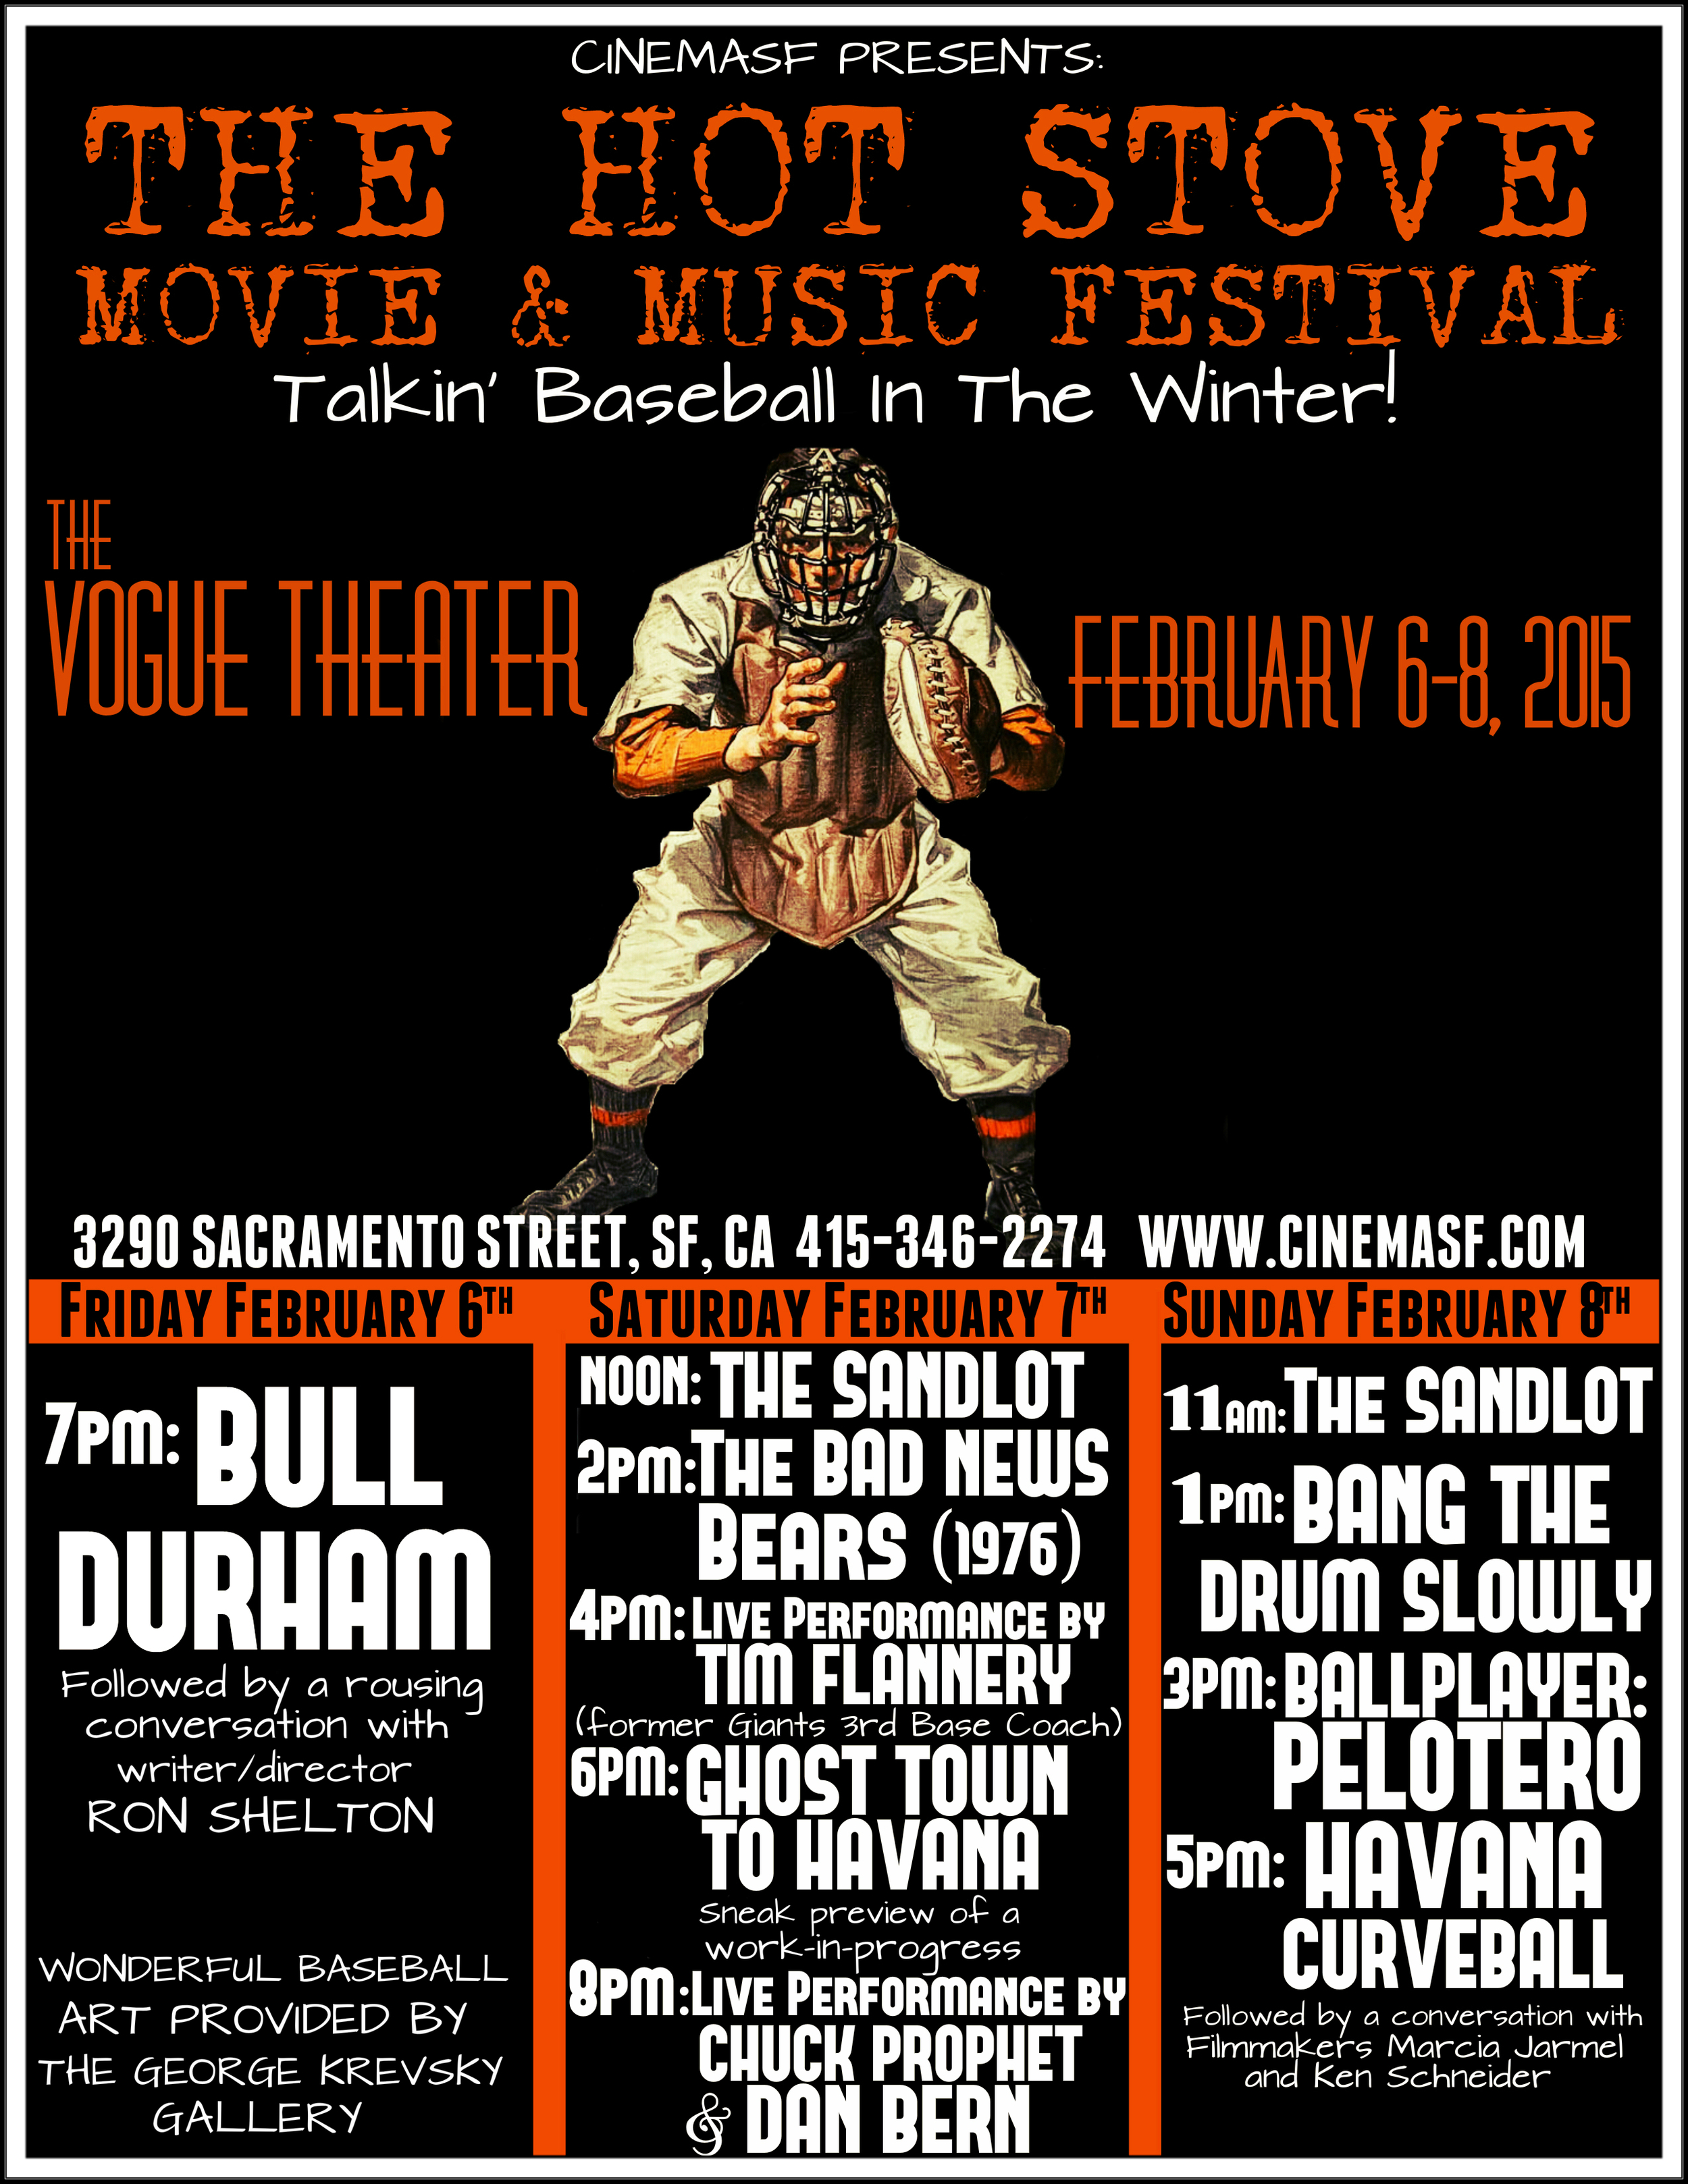 THE HOT STOVE MOVIE AND MUSIC FESTIVAL 2015 8.5x11.jpg